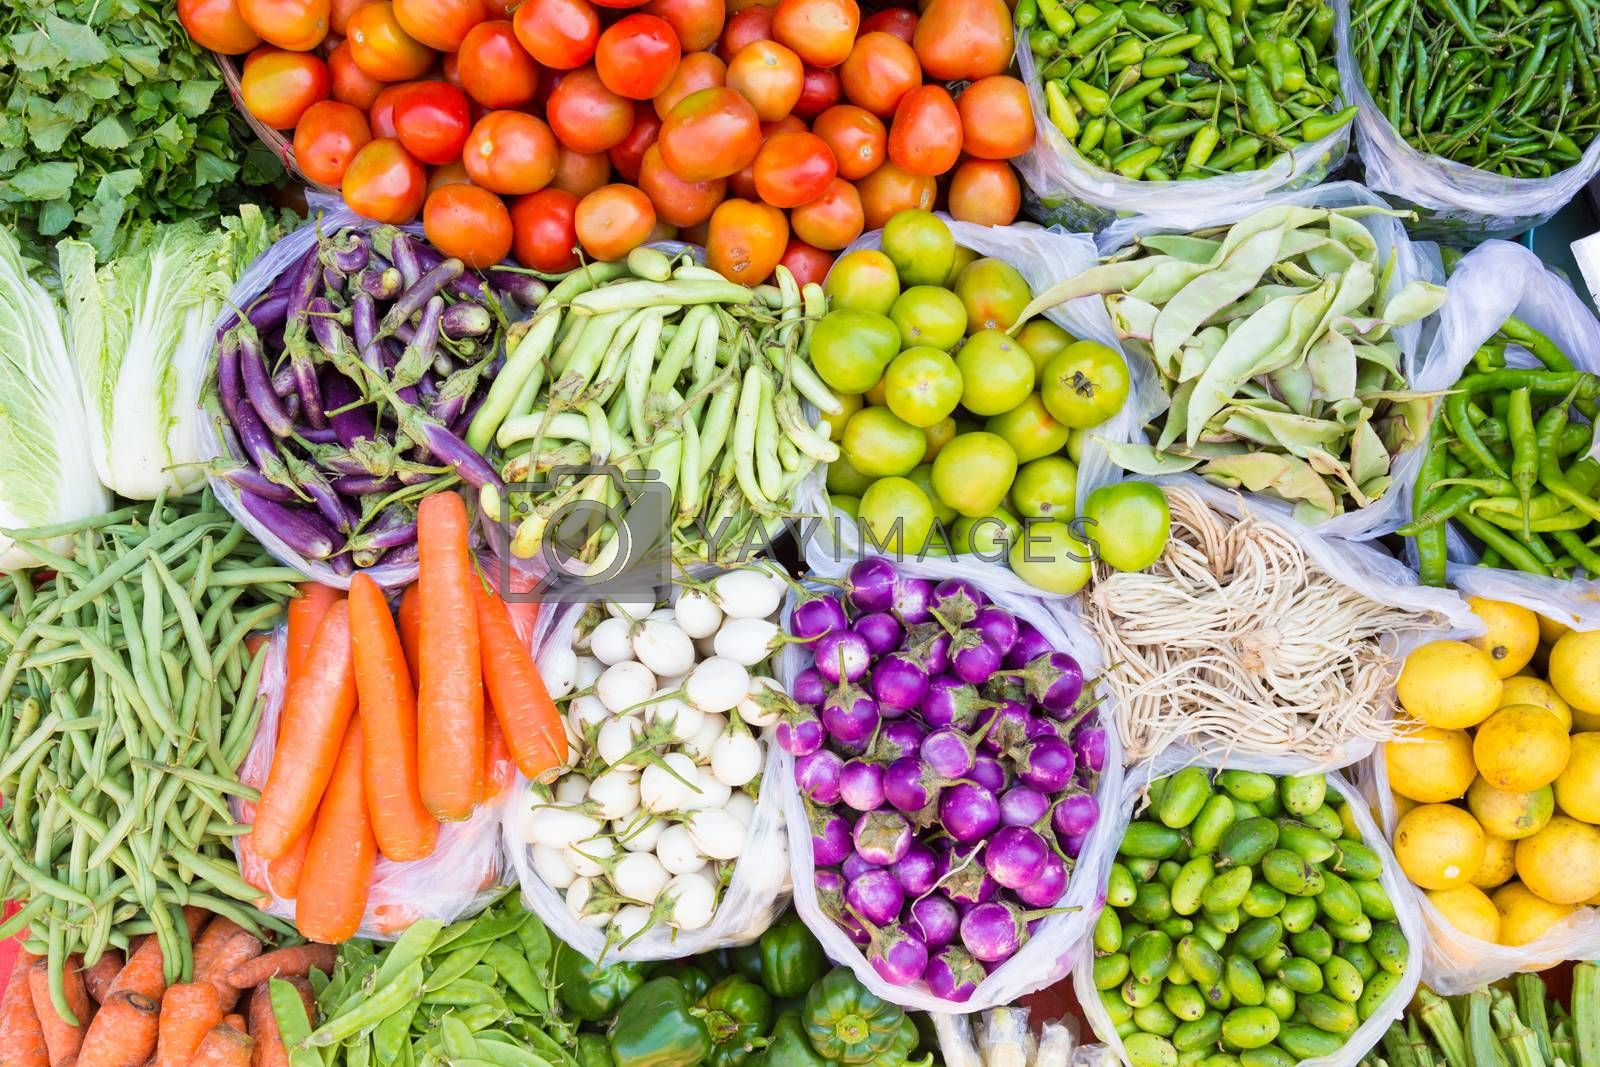 Royalty free image of Fruits and vegetables at a farmers market by kasto